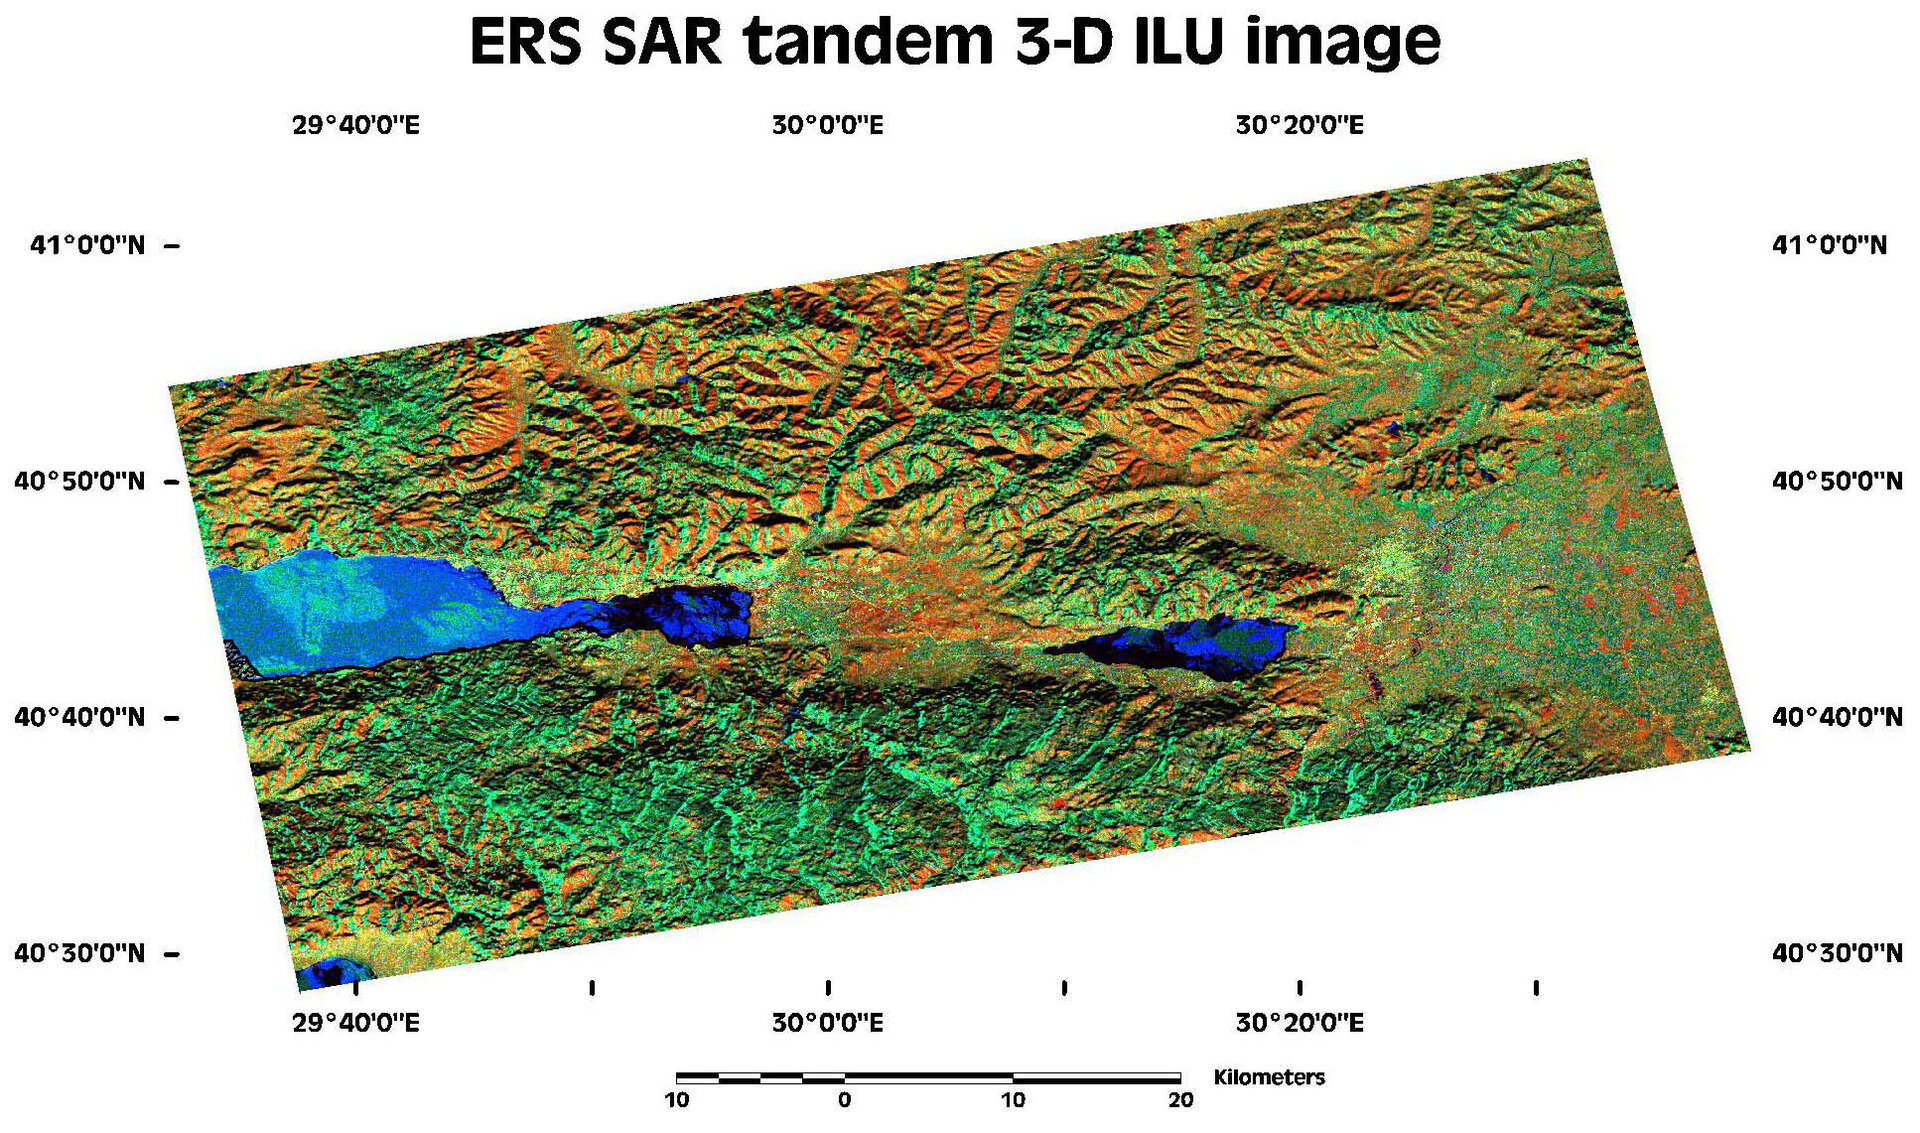 ERS-SAR image of earthquake region in Turkey